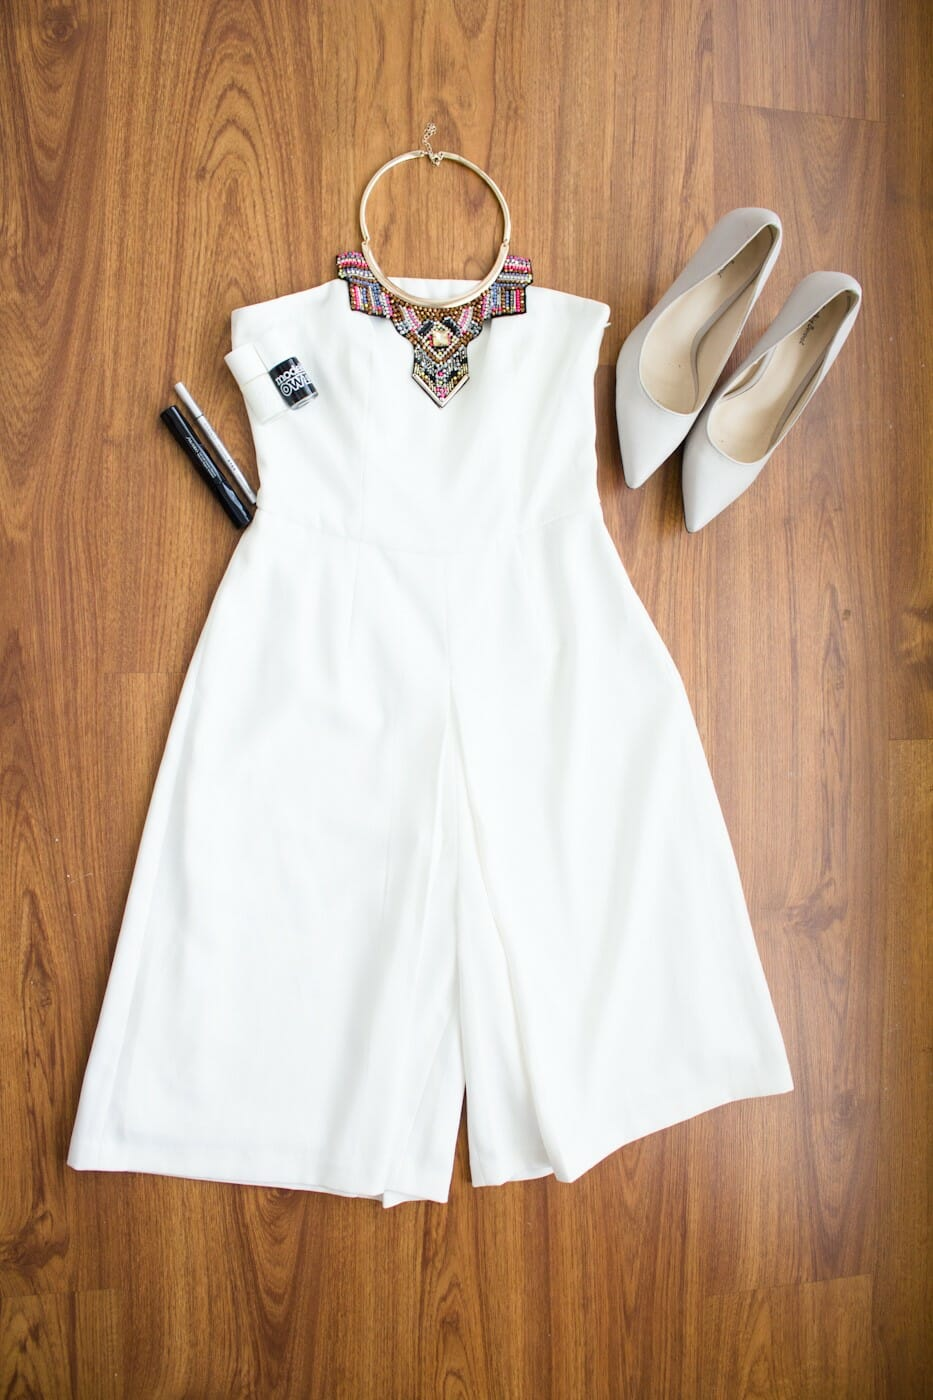 Jumpsuit from Love, Bonito, shoes from Zalora